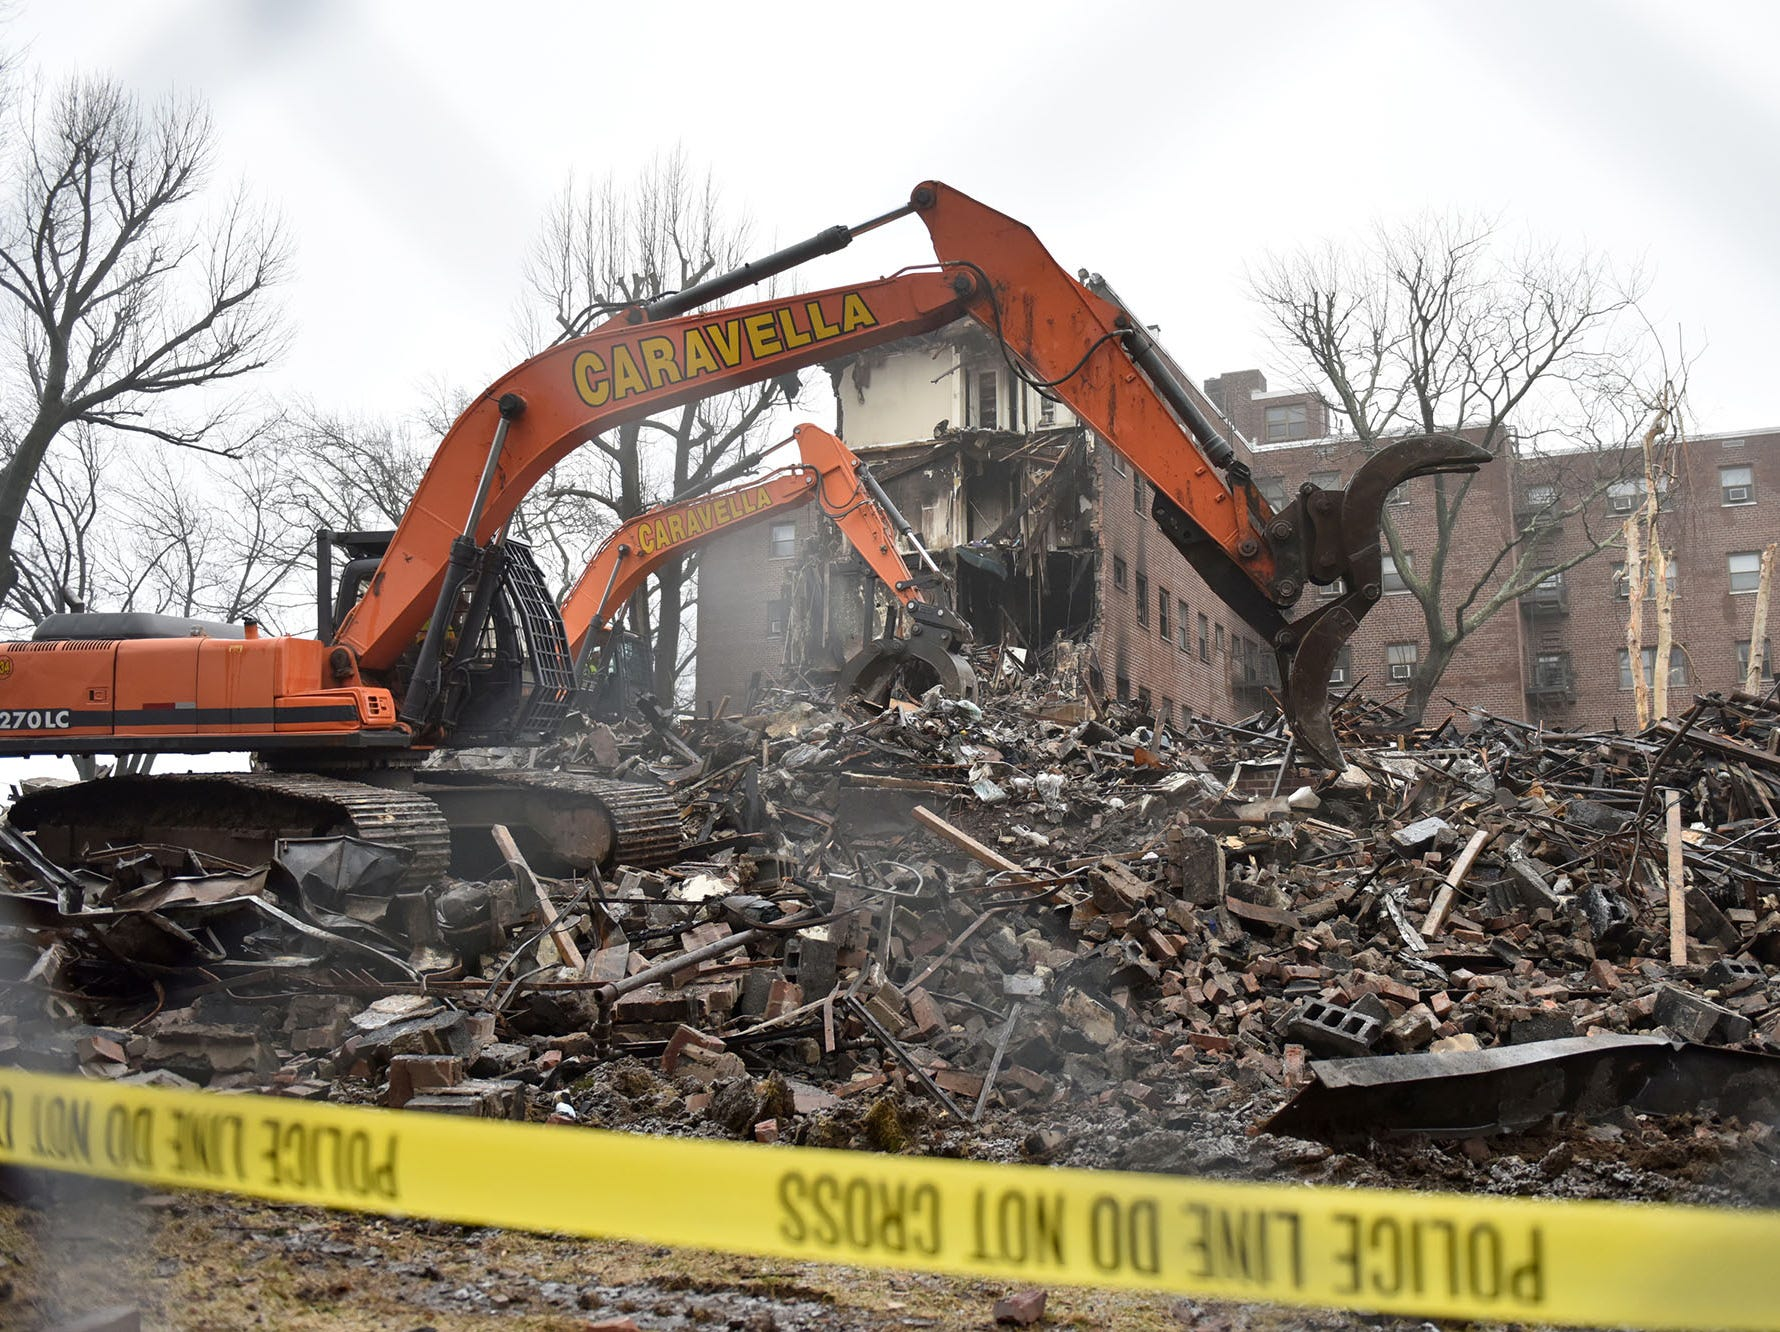 Demolition equipment is tearing down part of the apartment complex that was heavily damaged by the fire that broke out on Edwin Ave in Fort Lee on February 14, 2019.